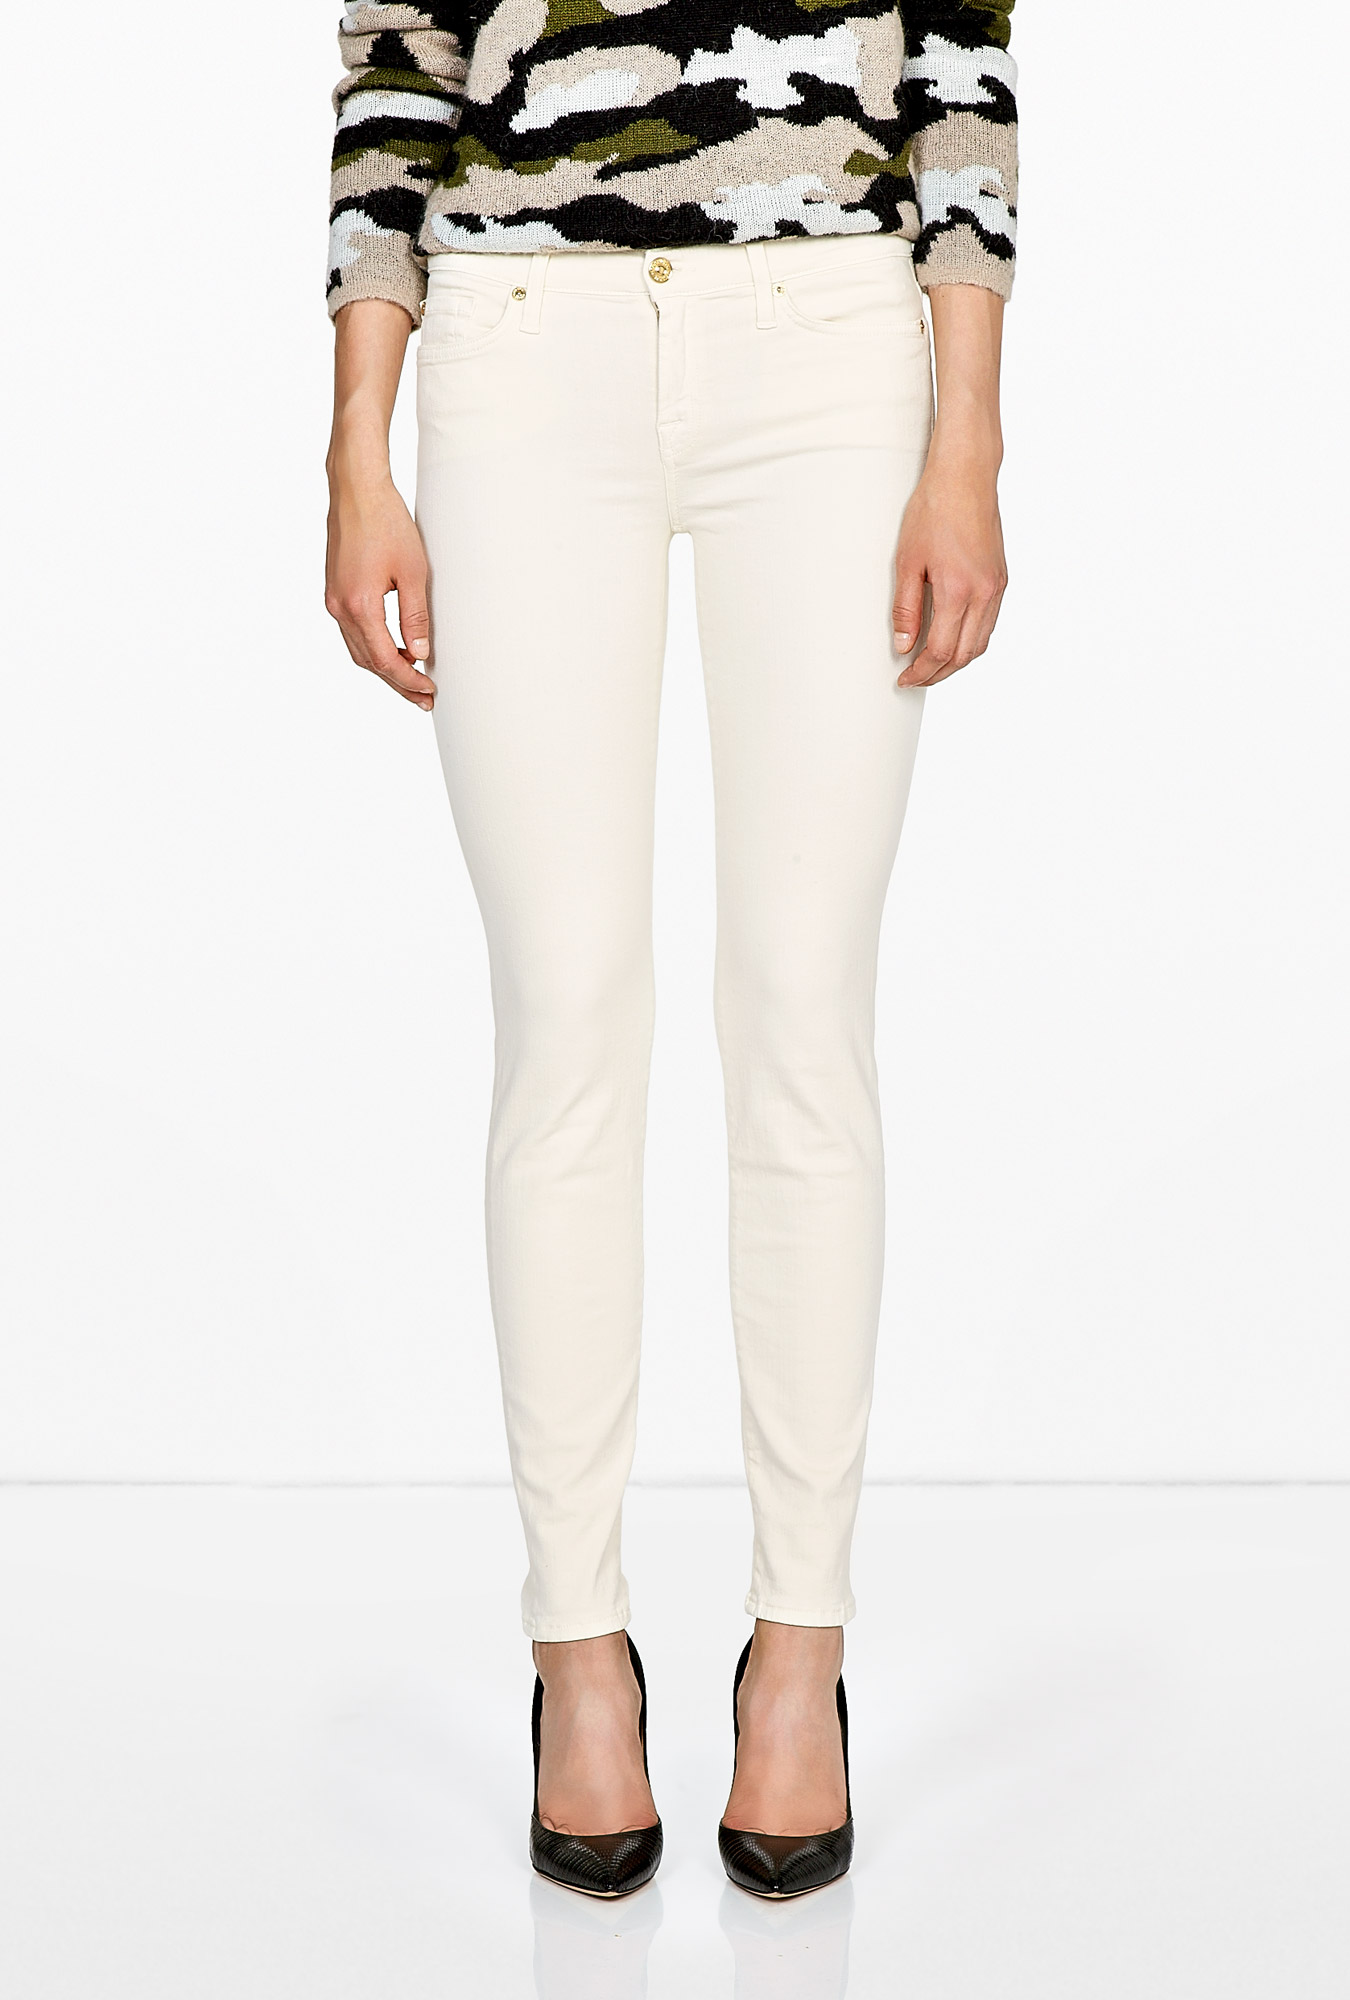 7 For All Mankind | Antique White Skinny Slim Illusion Jeans by 7 For All Mankin